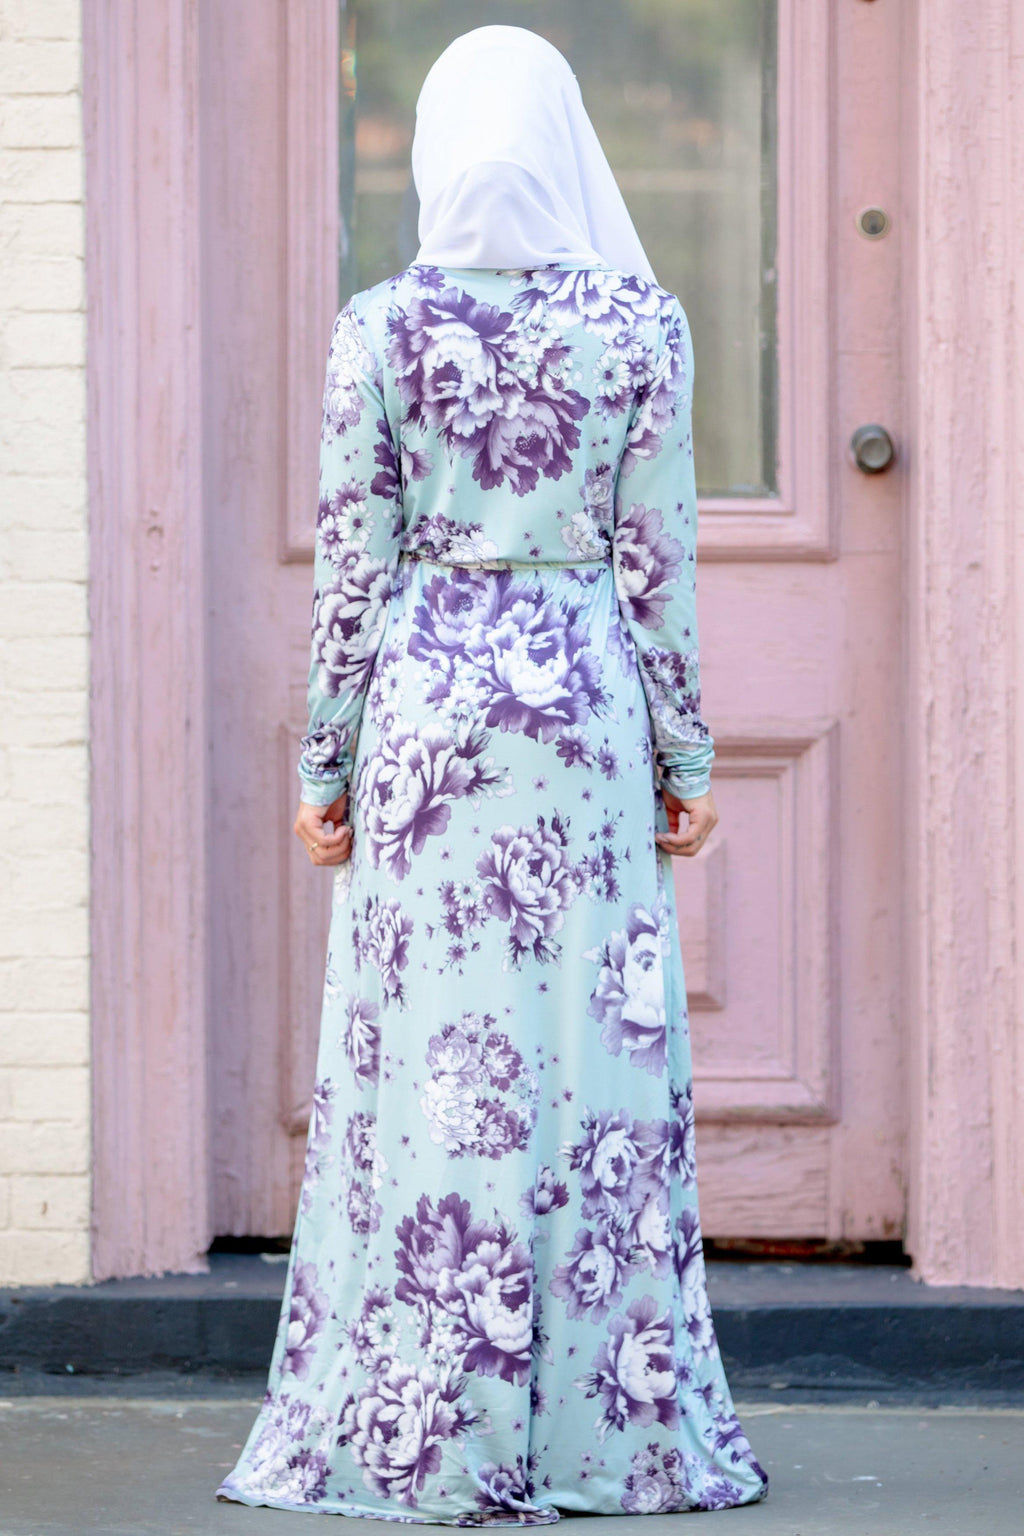 Mint Floral Drawstring Long Sleeve Maxi Dress - Abaya, Hijabs, Jilbabs, on sale now at UrbanModesty.com